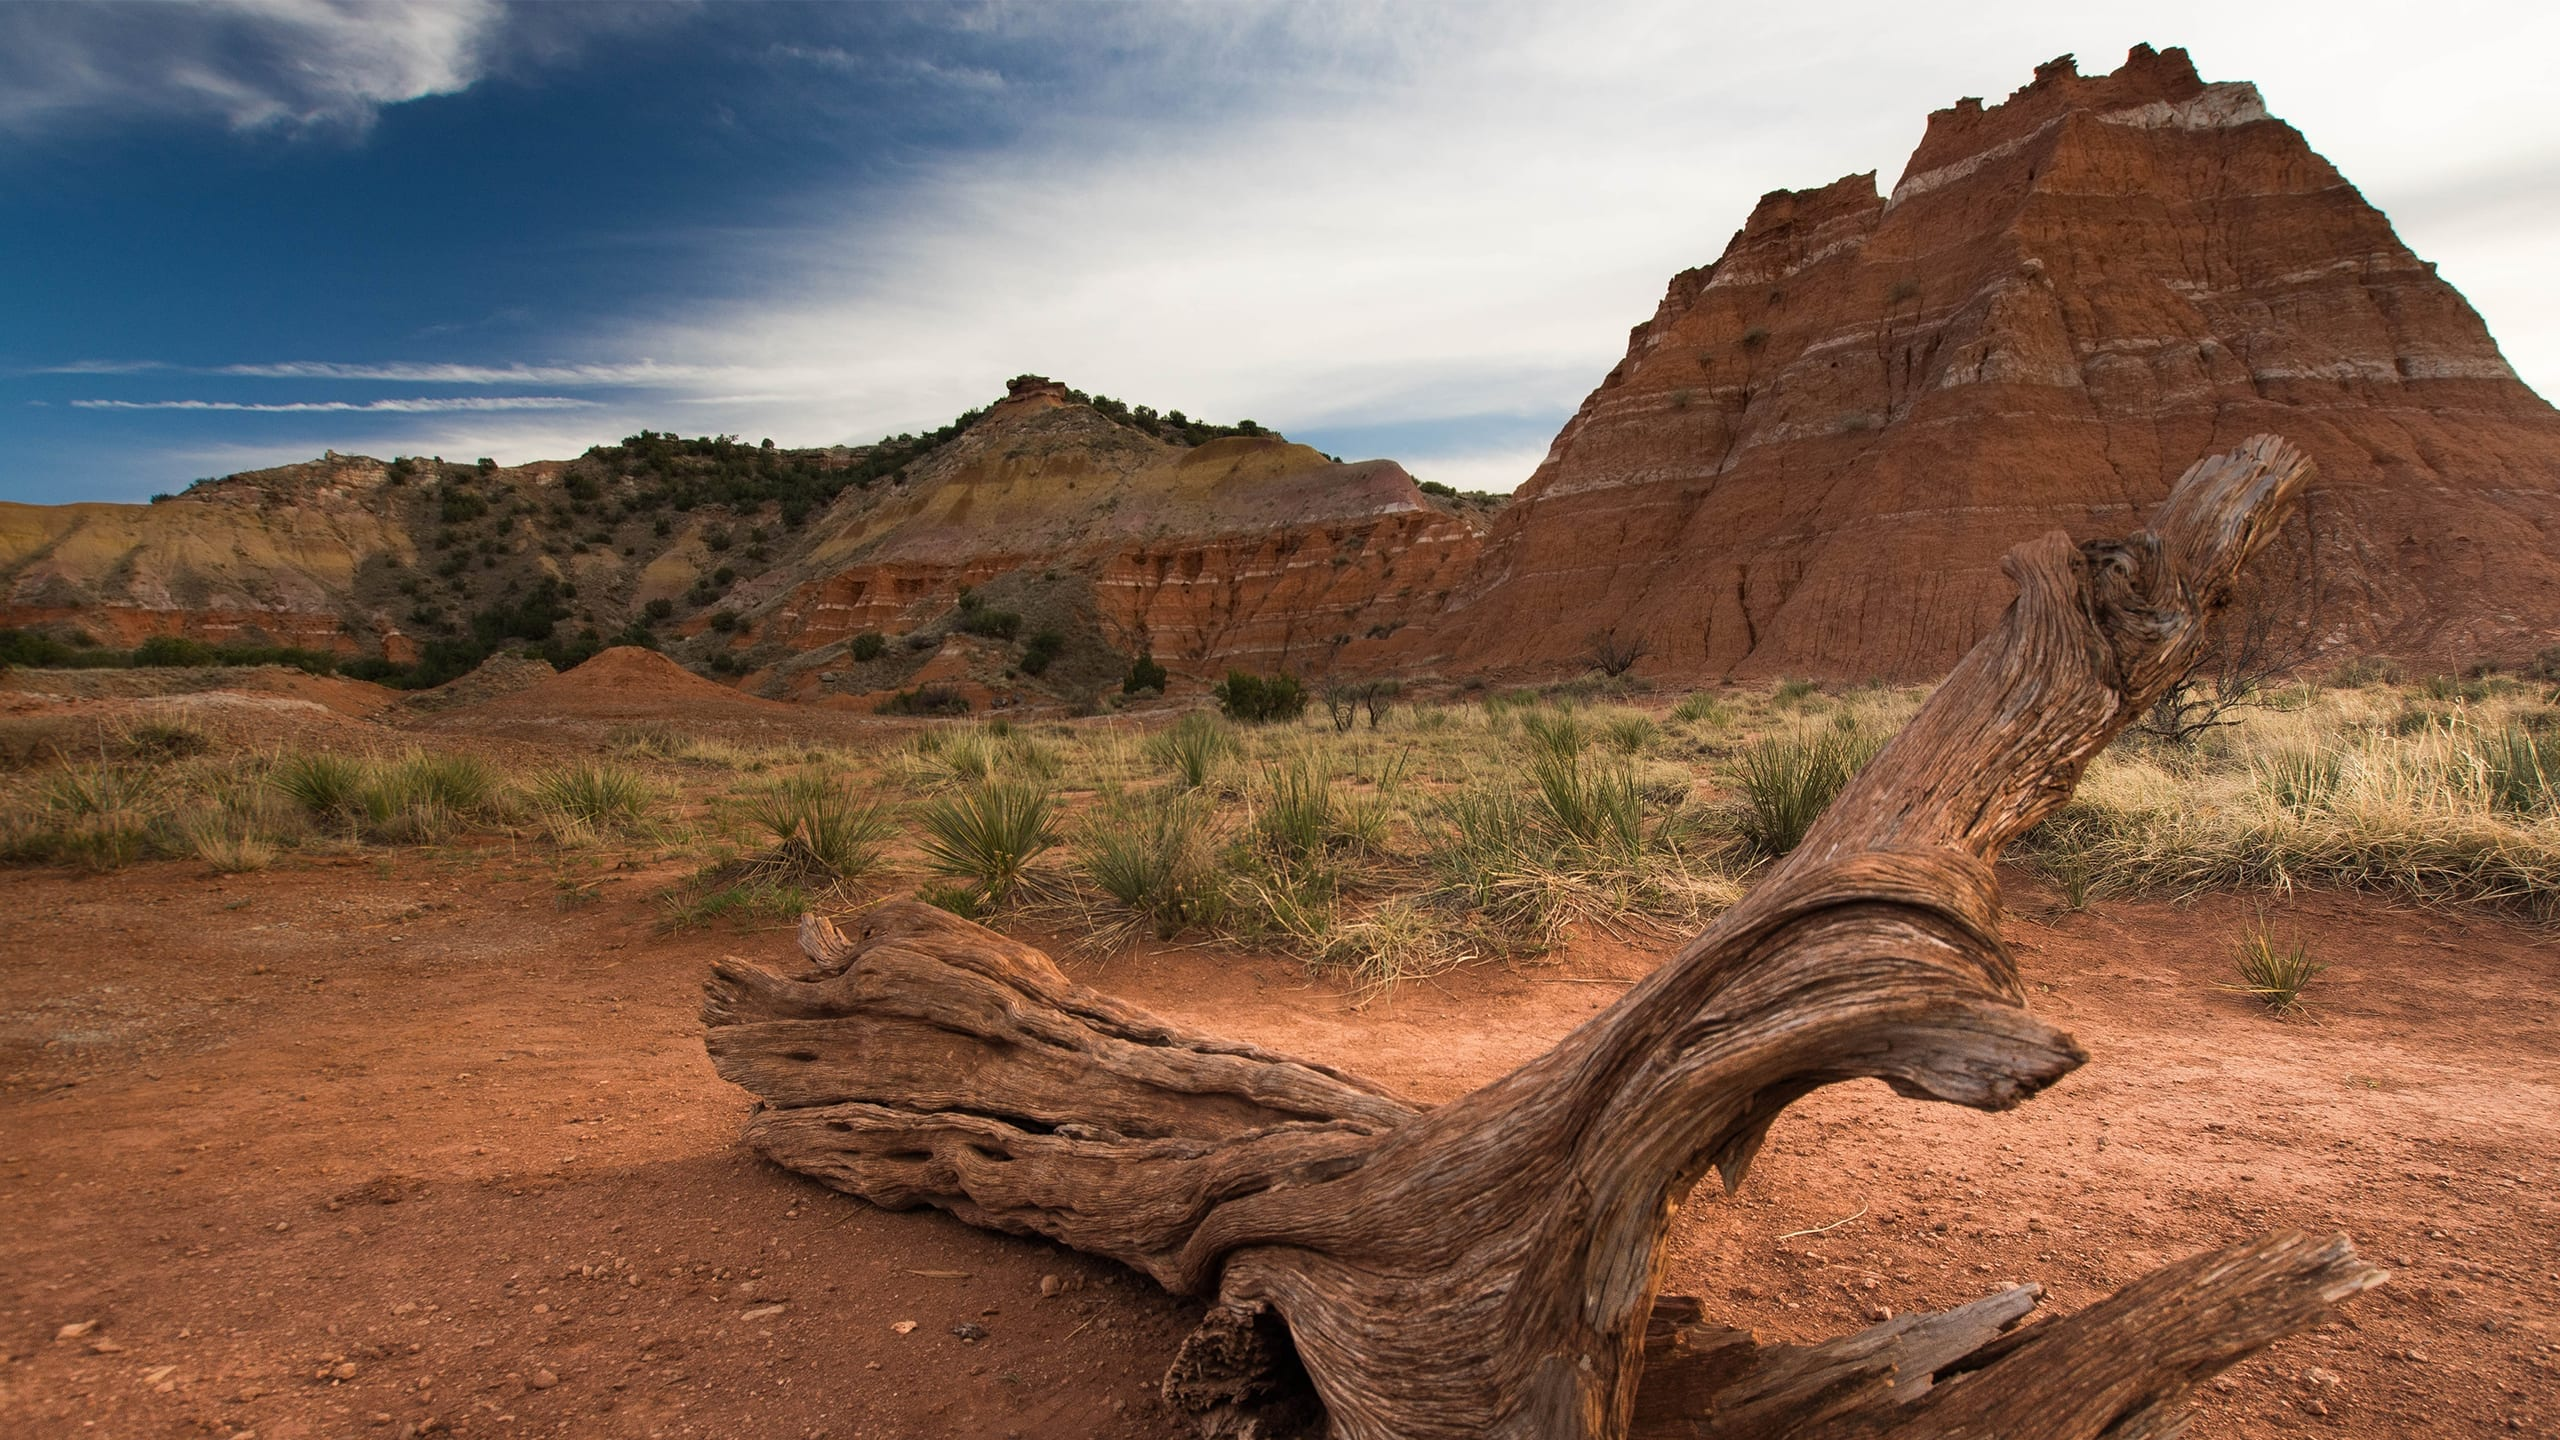 VISIT THE U.S. STATE PARKS PAGE